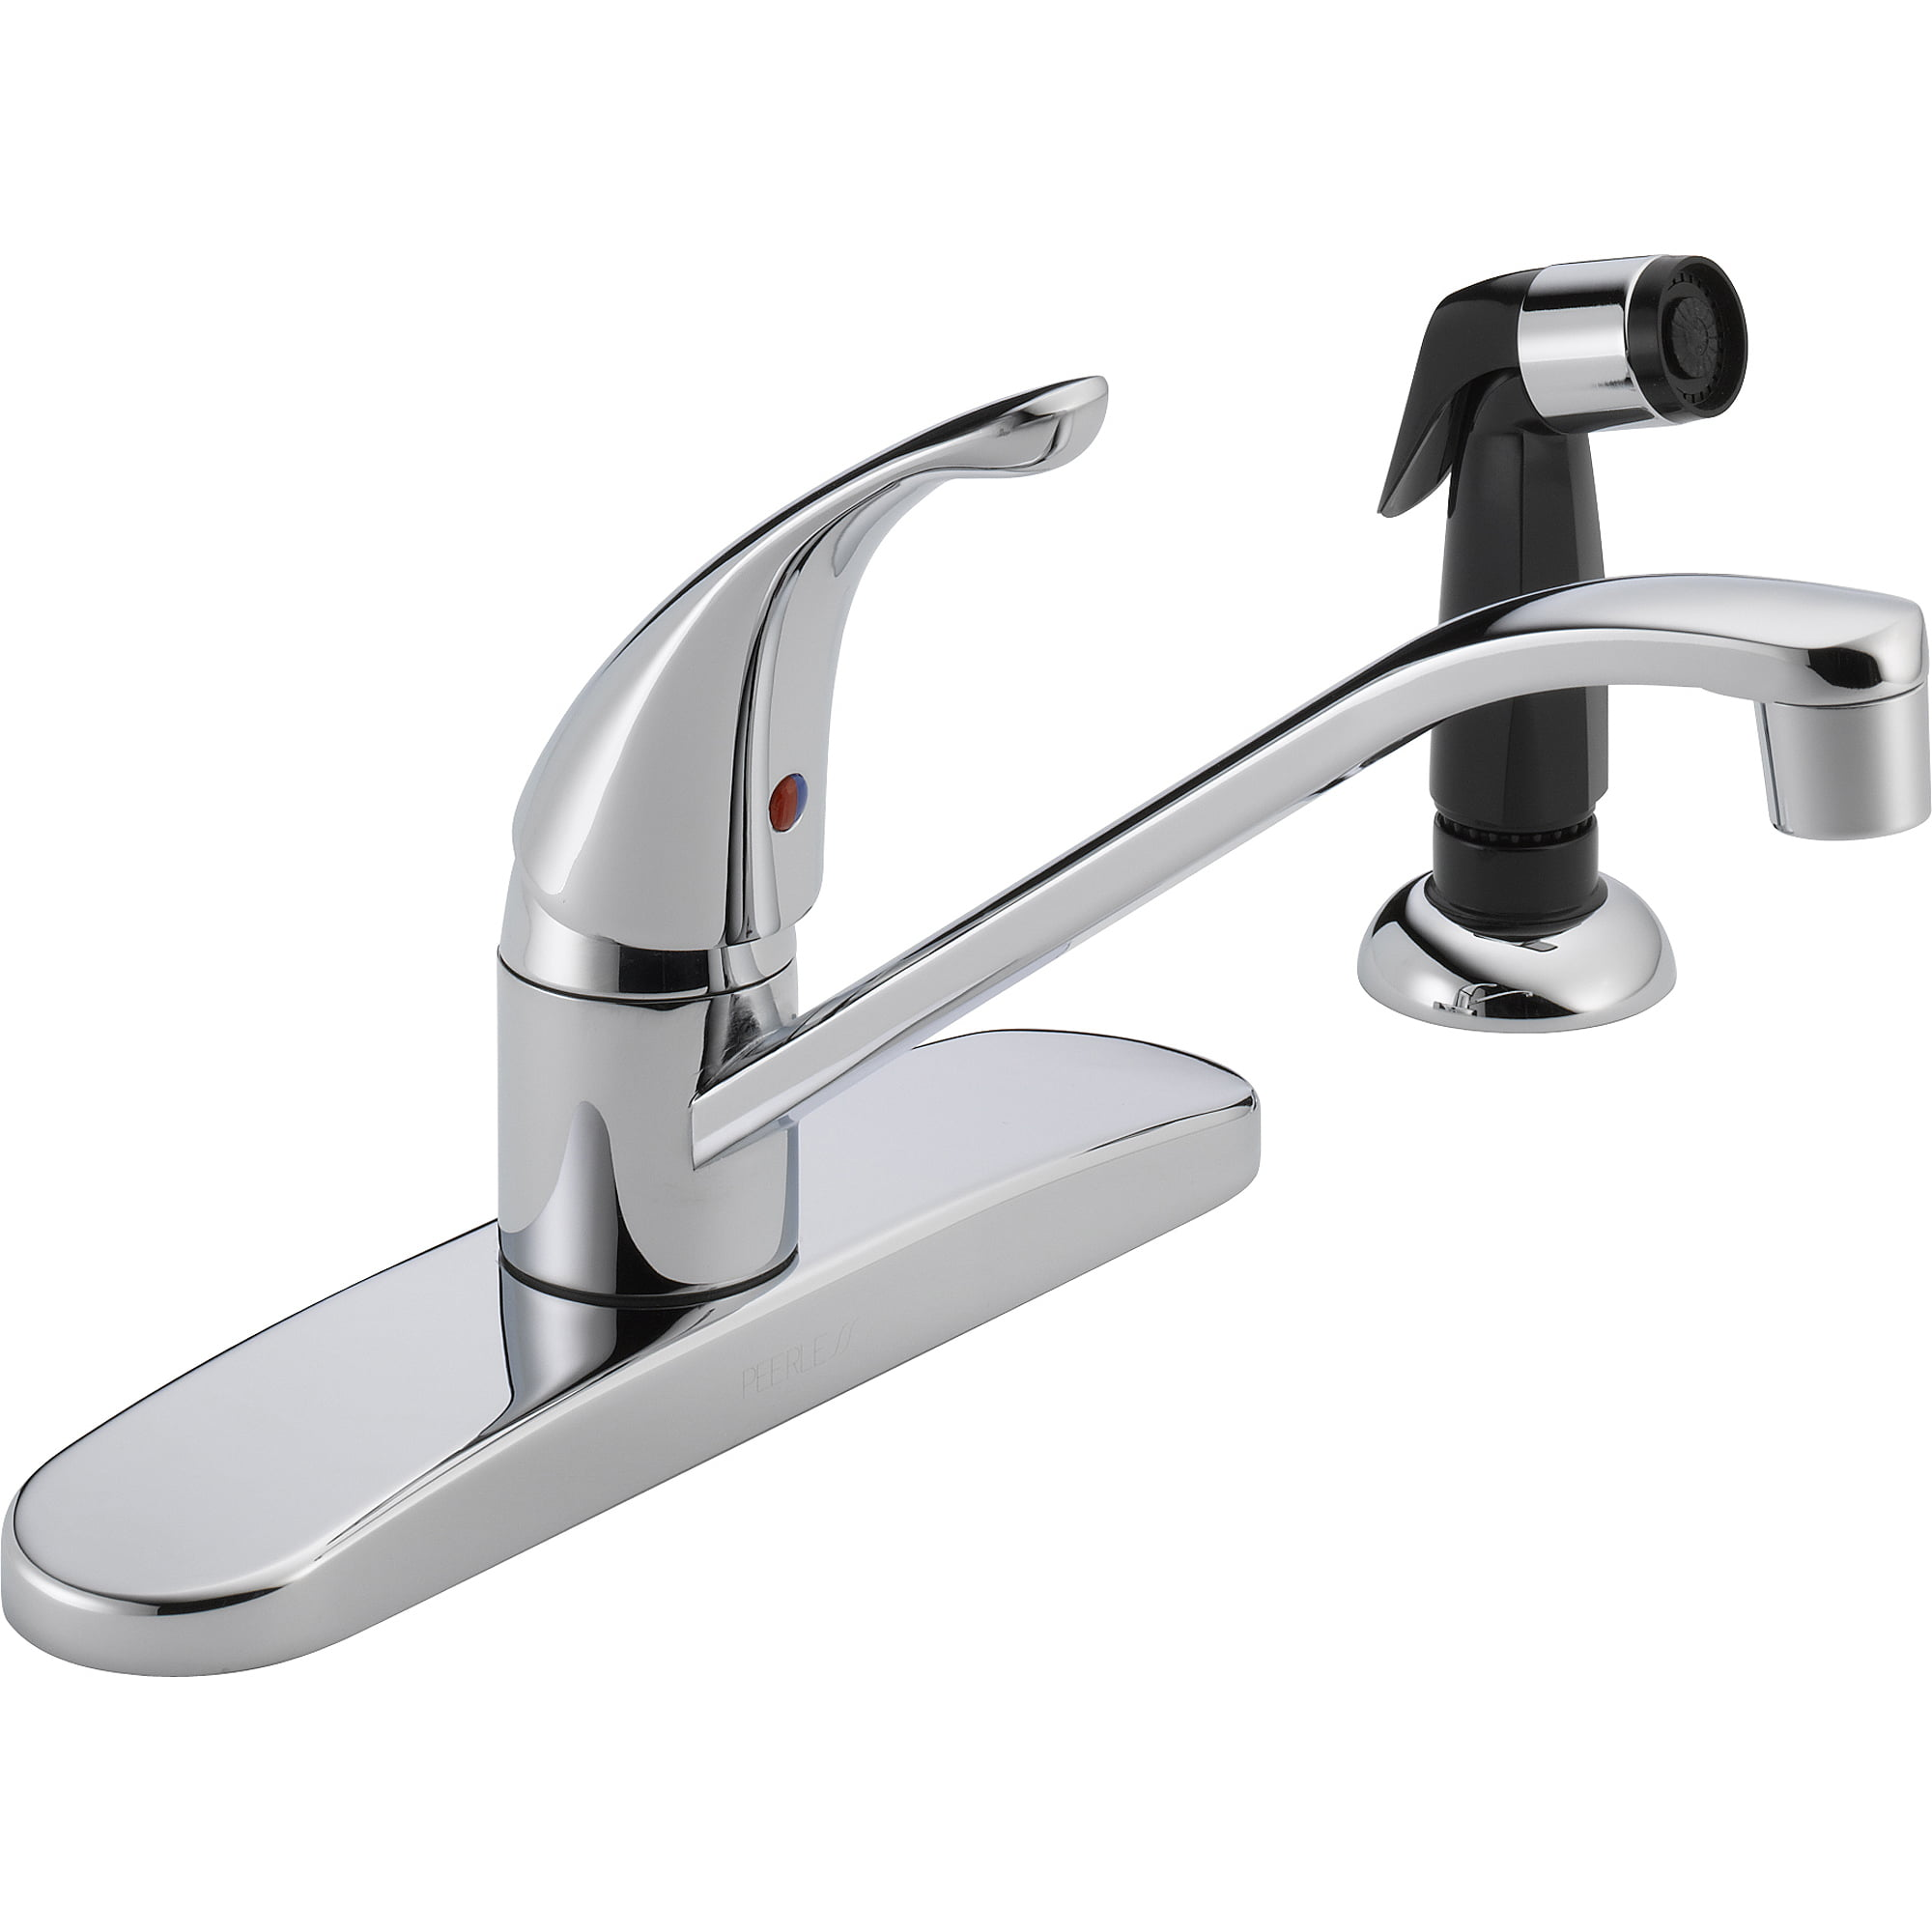 Peerless single handle kitchen faucet with side sprayer chrome p115lf w walmart com